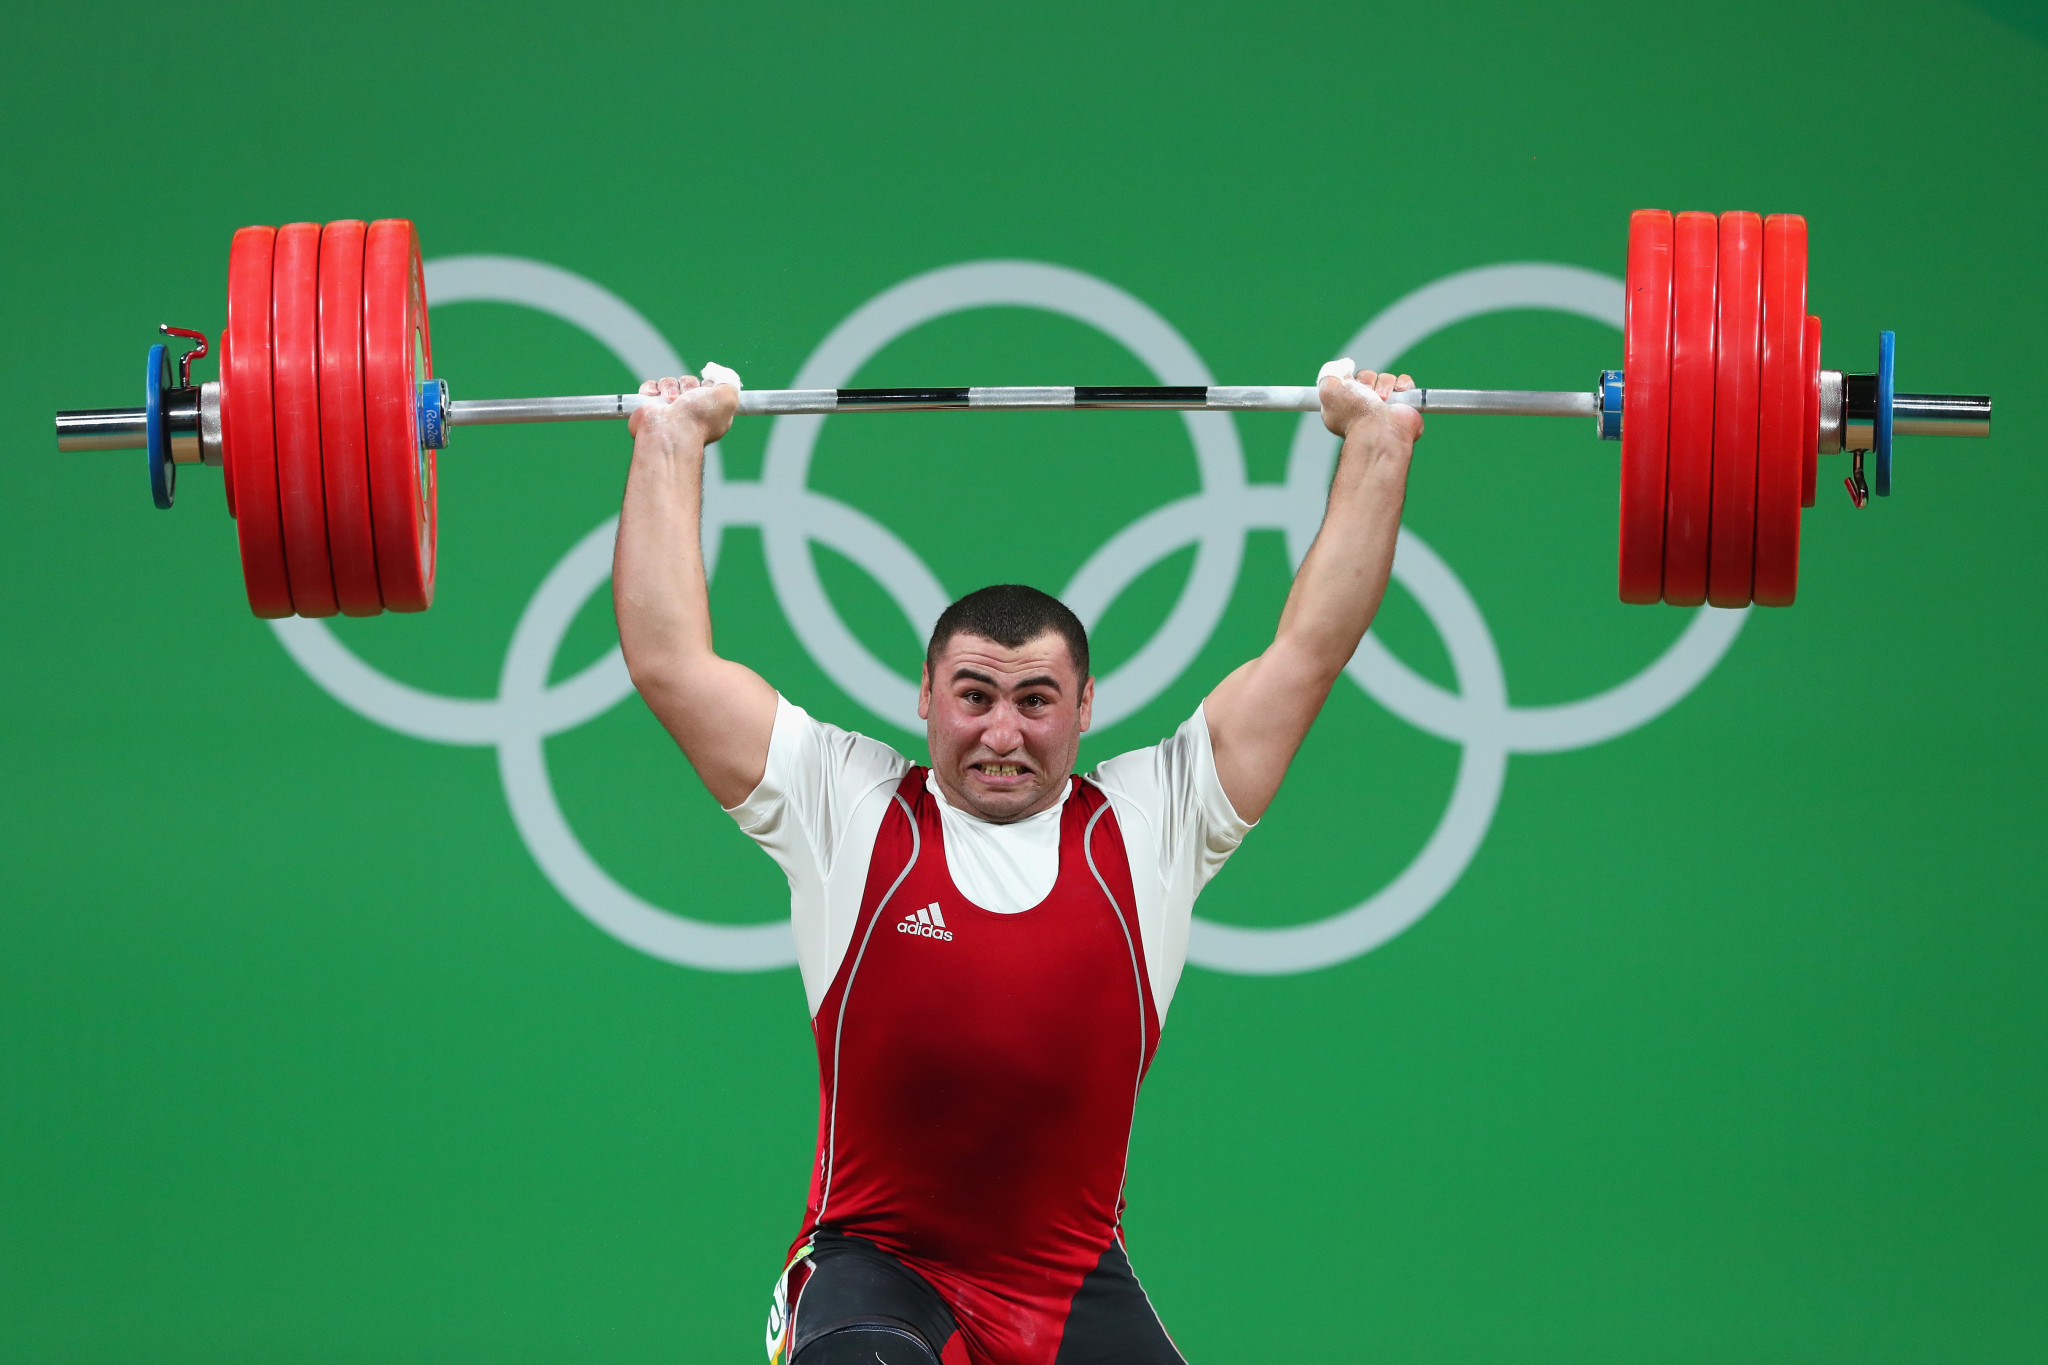 Simon Martirosyan of Armenia won Youth Olympic gold in 2014 and then silver at Rio 2016 ©Getty Images